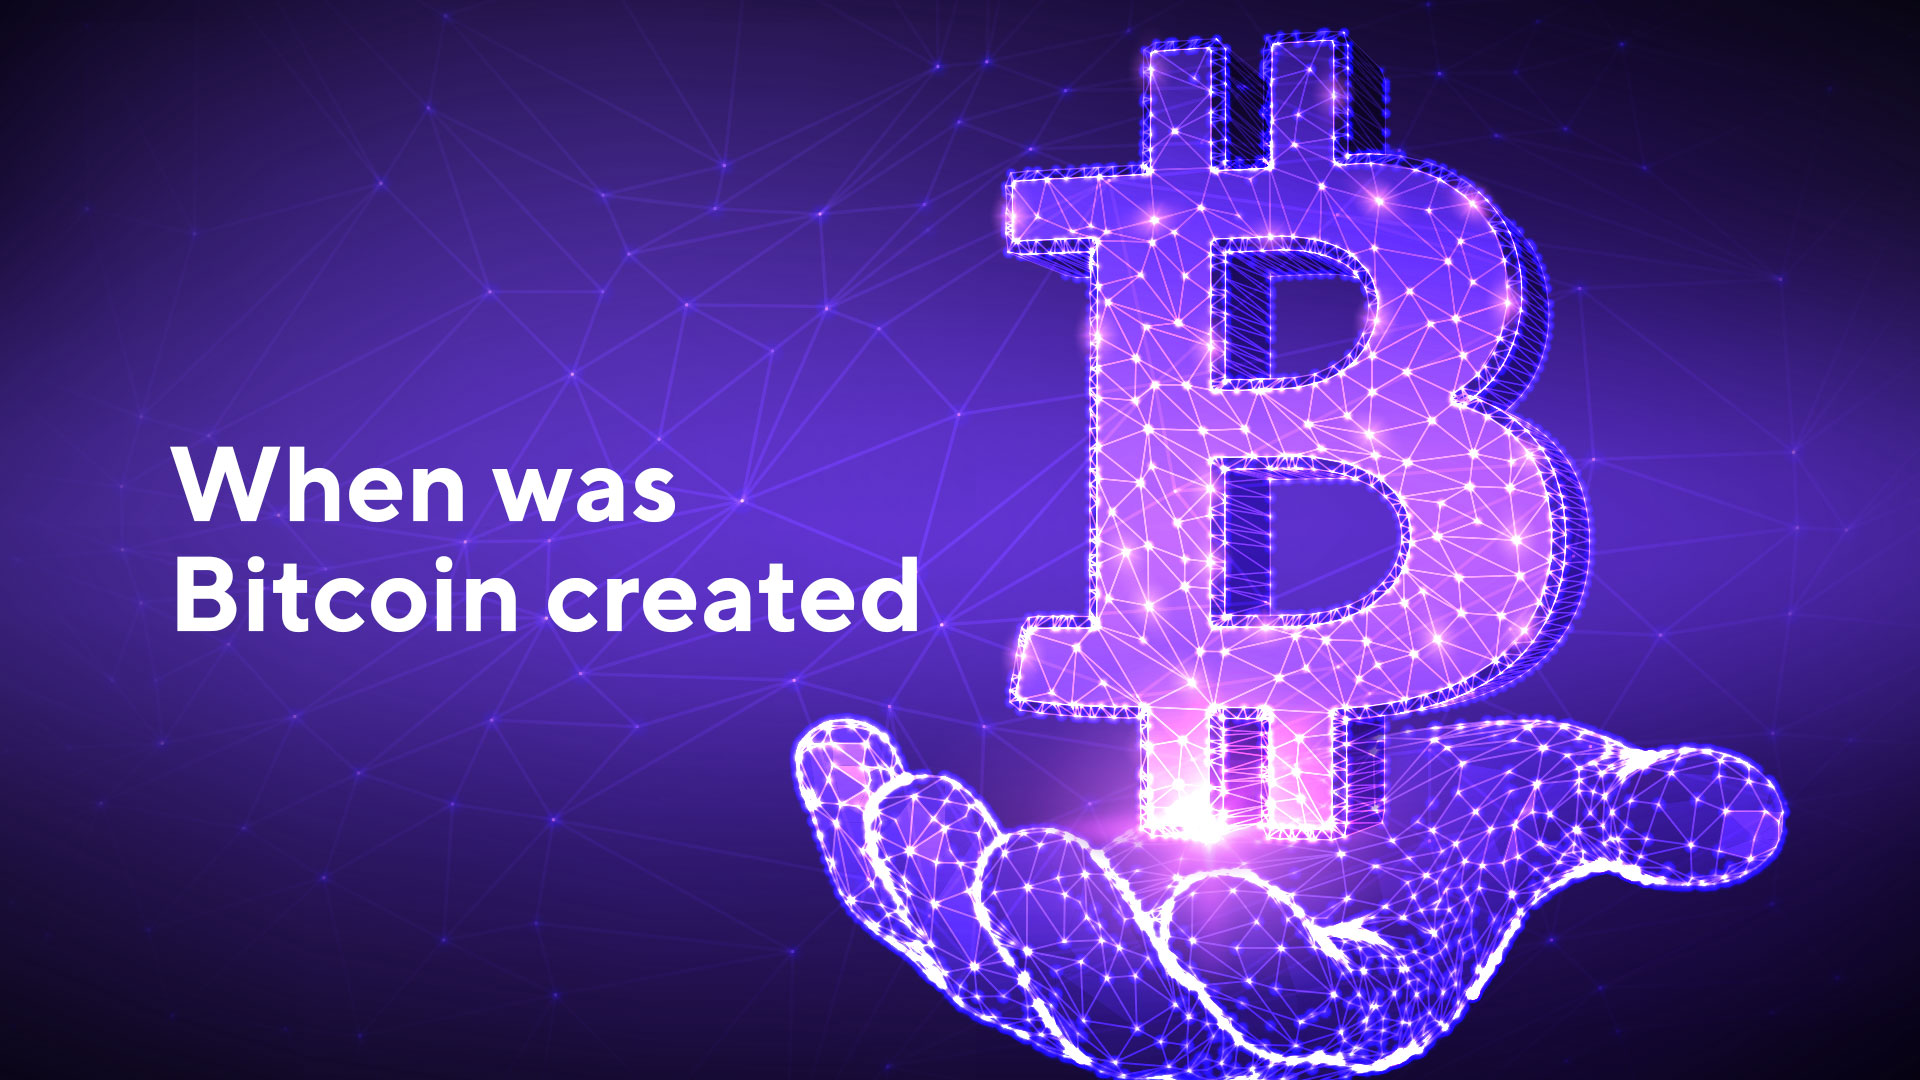 When Was Bitcoin Created: Basic Information About Bitcoin Creation